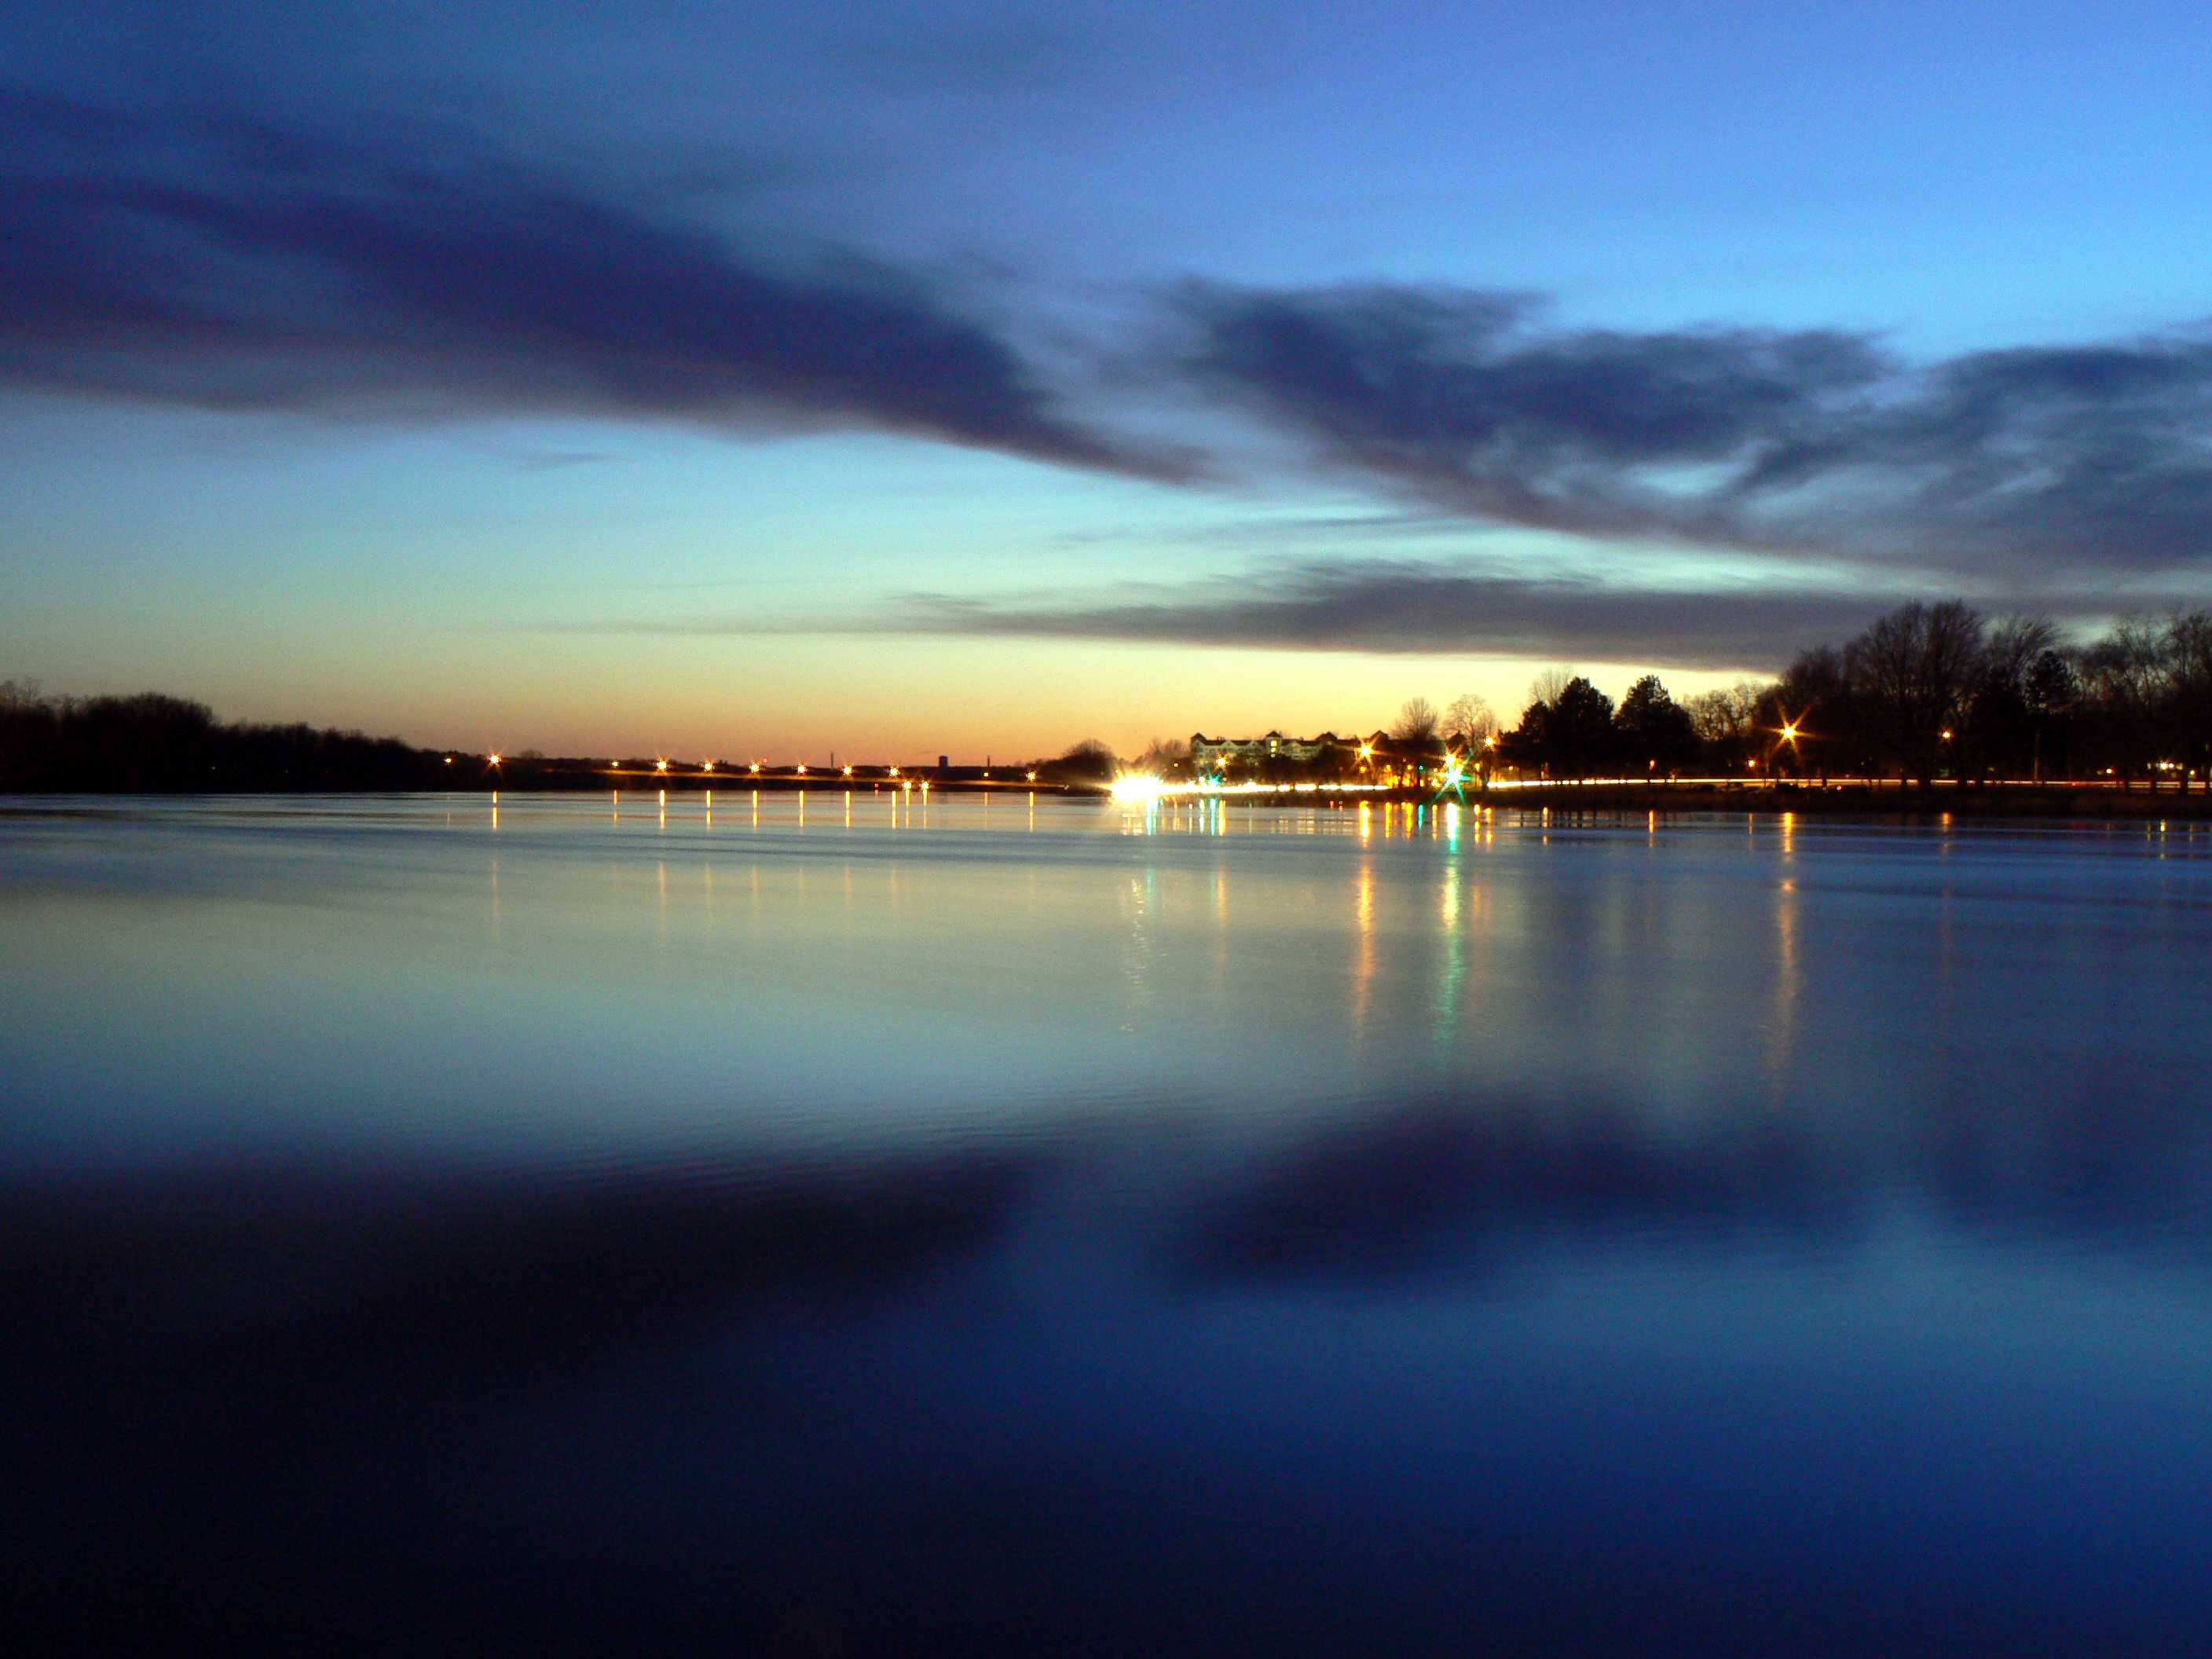 File:Lowell merrimack river sunset.JPG - Wikipedia, the free ...